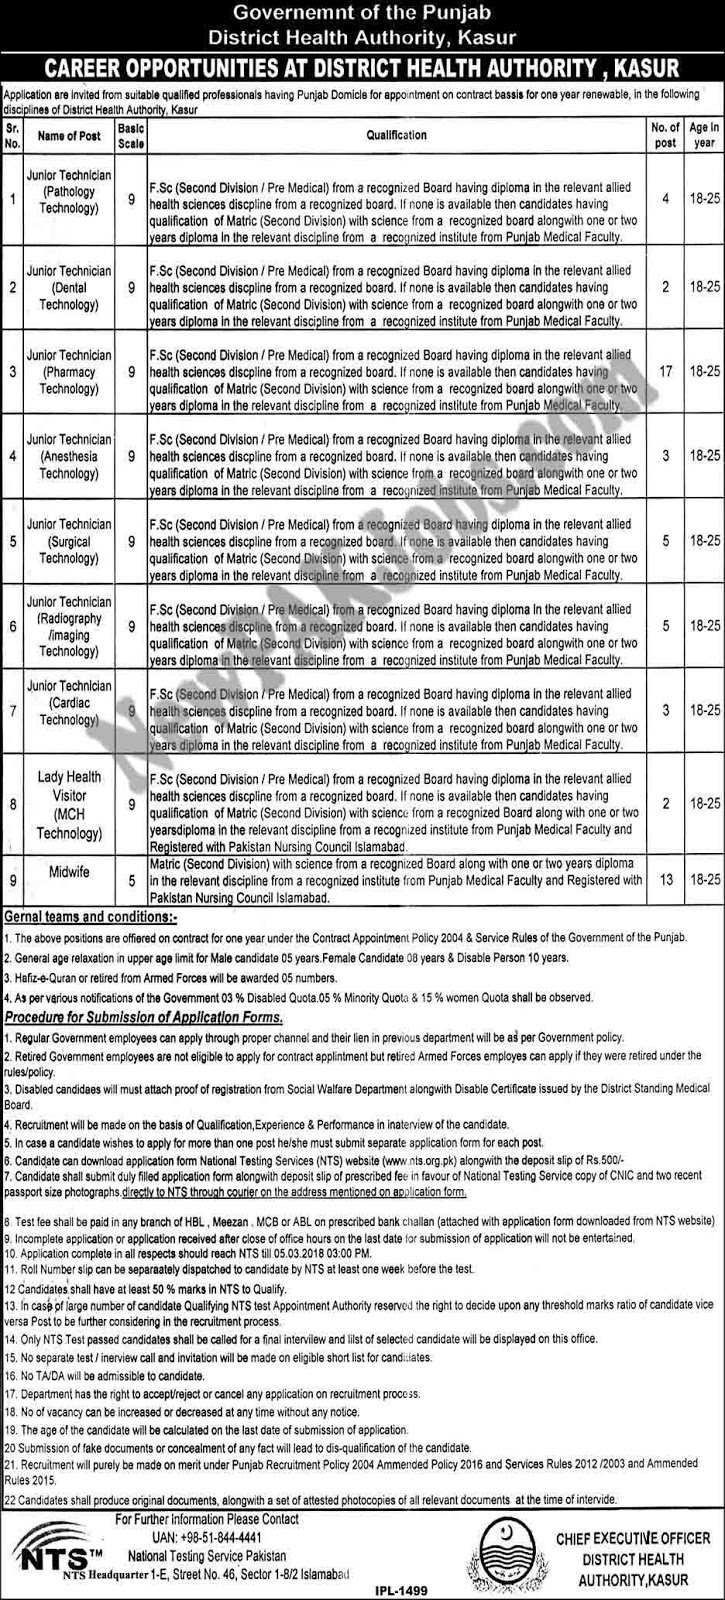 District Health Authority Kasur Today New Jobs Through NTS 03 Feb 2018